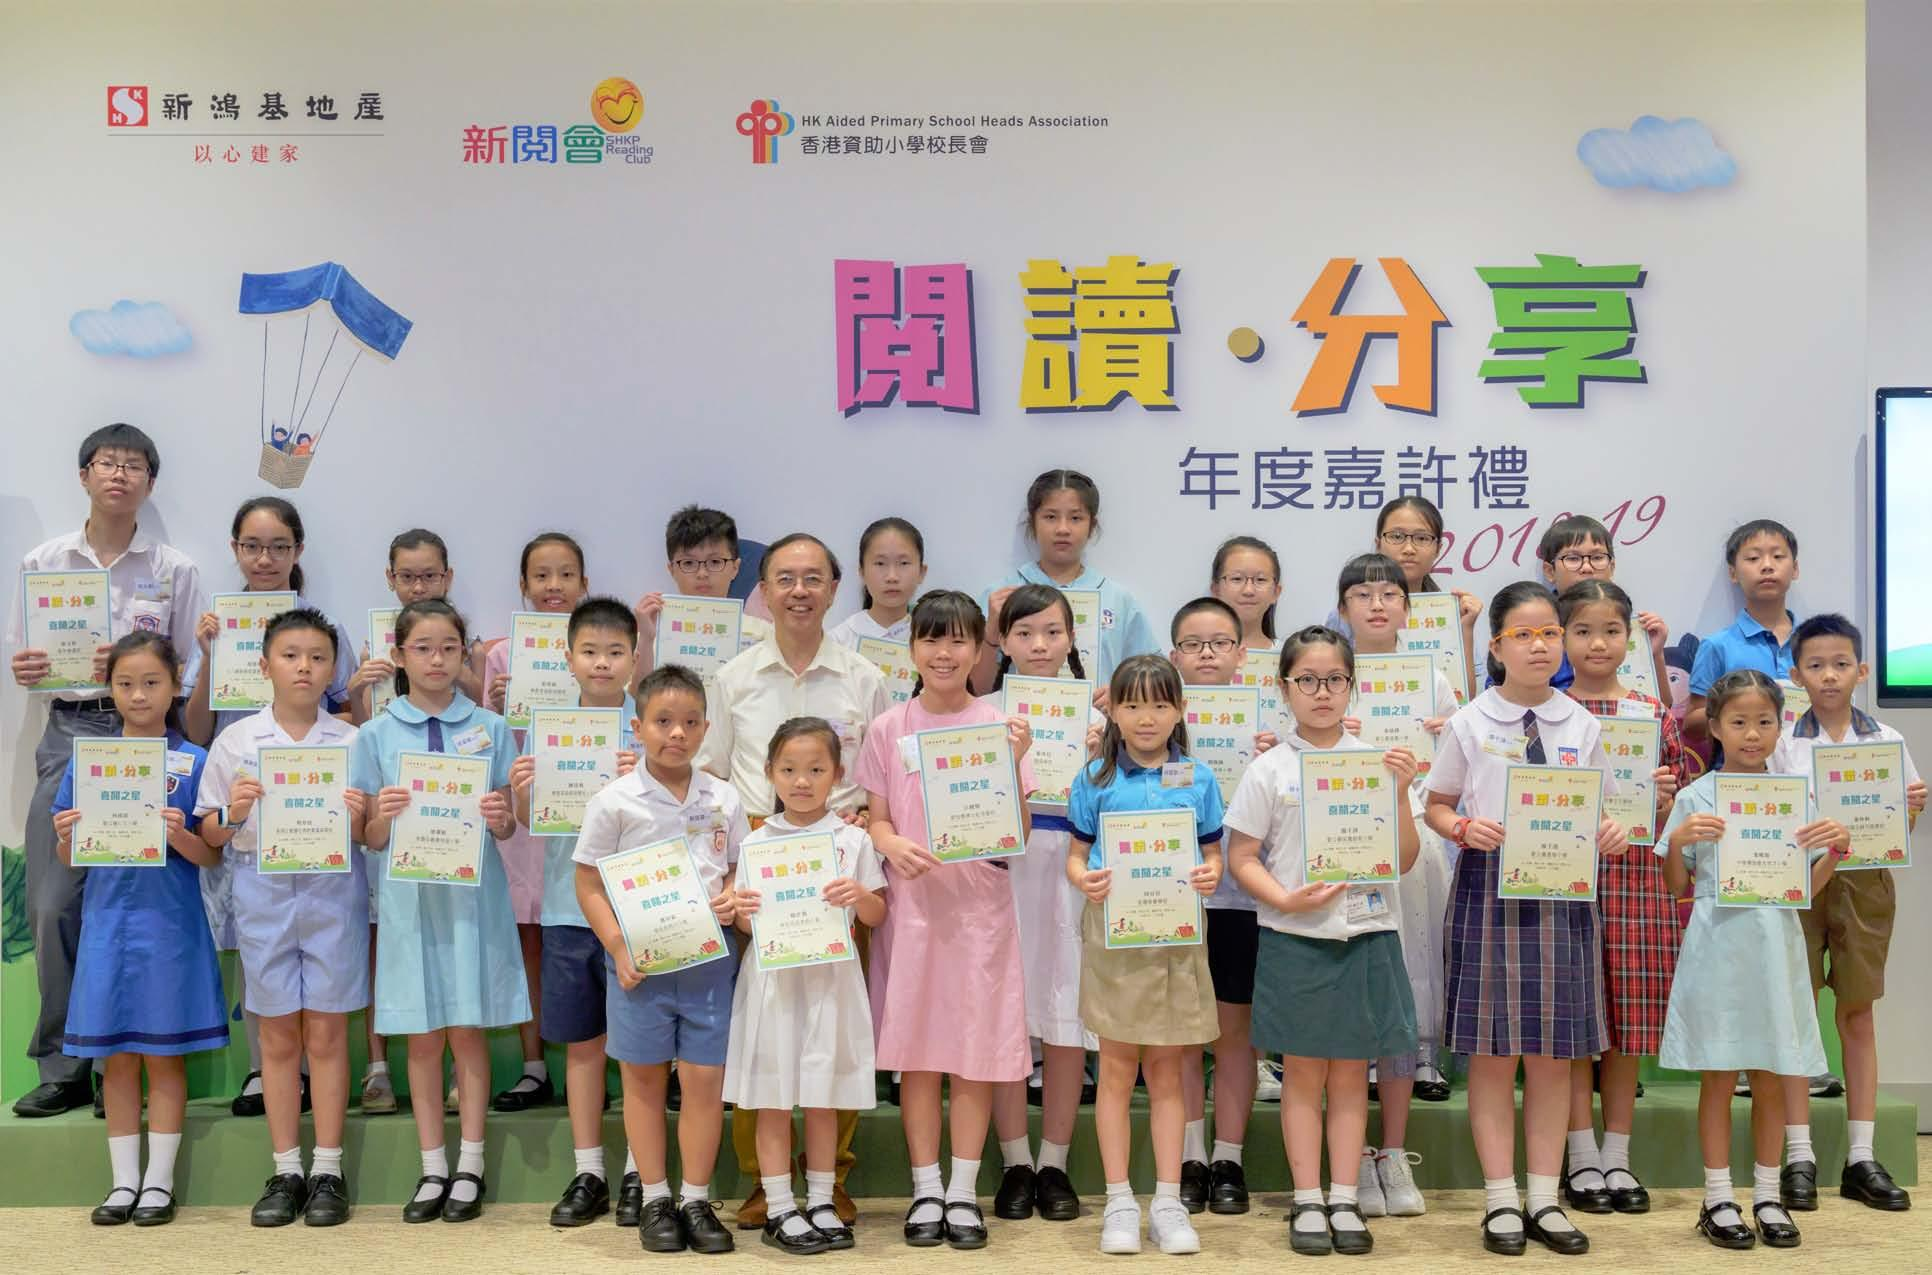 HKAPSHA Honorary Chairman Leung Siu-tong (second row, fifth left) presents the Outstanding Performance Awards to the students